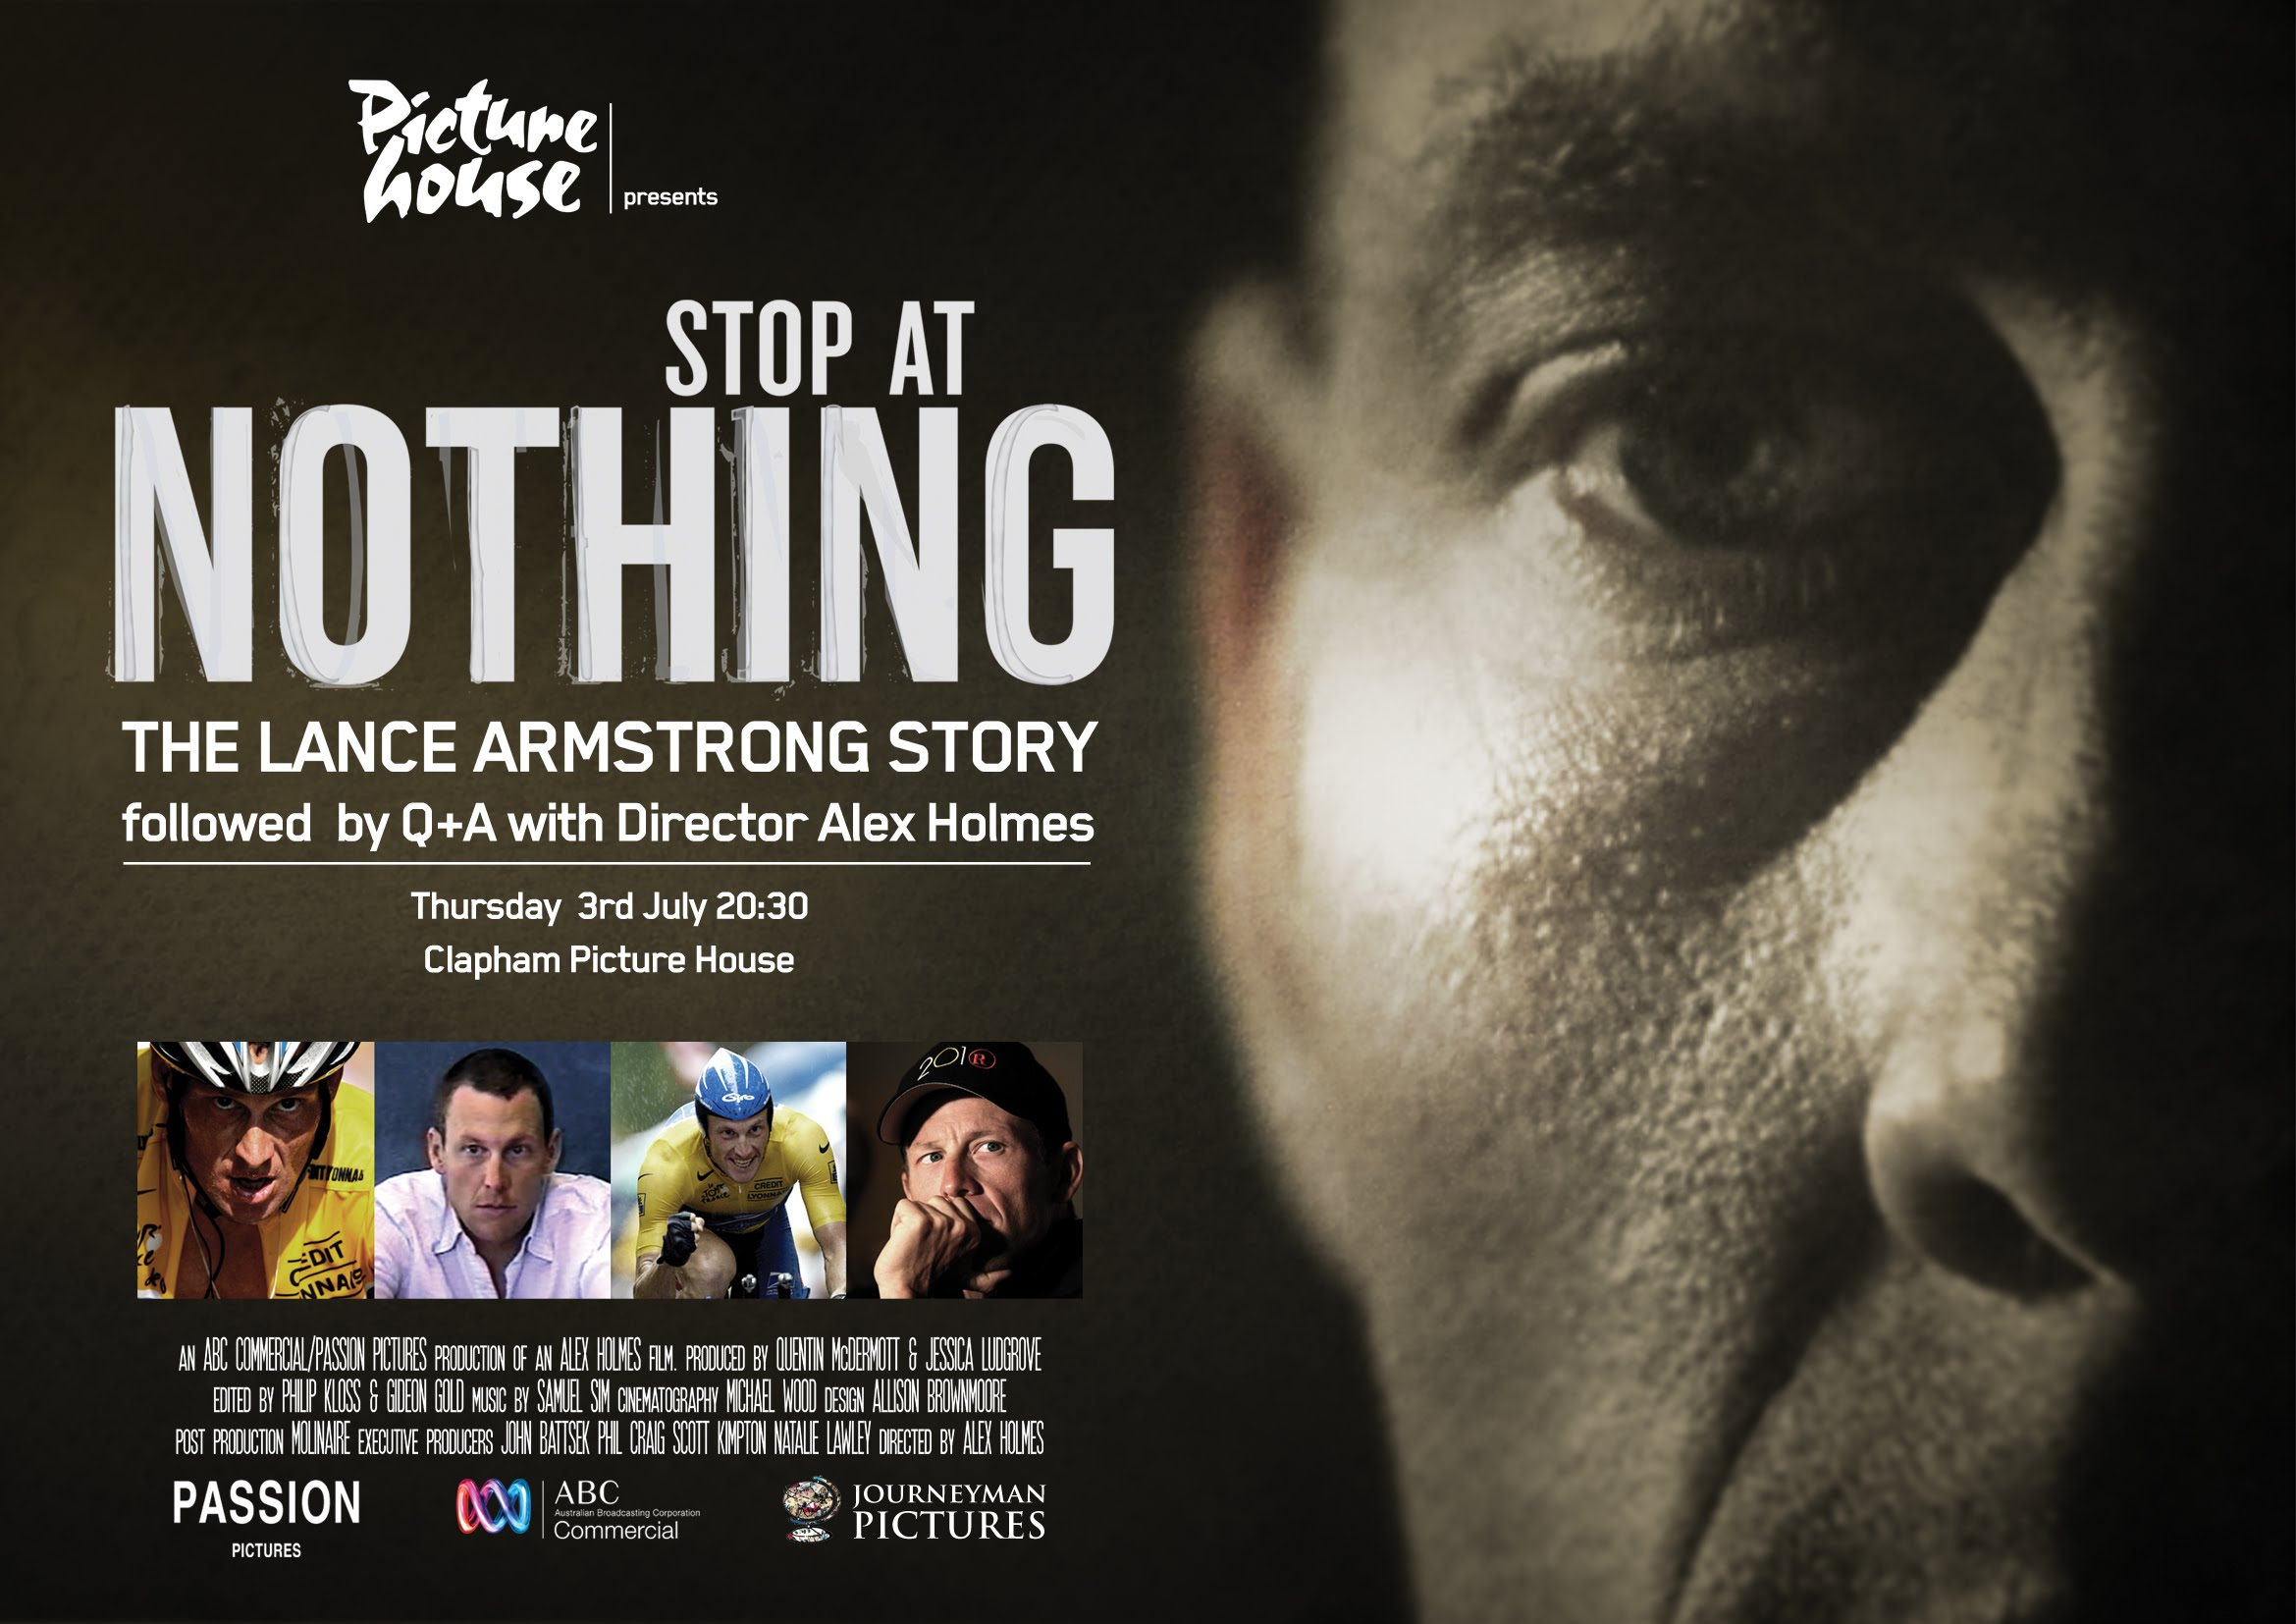 STOP AT NOTHING POSTER